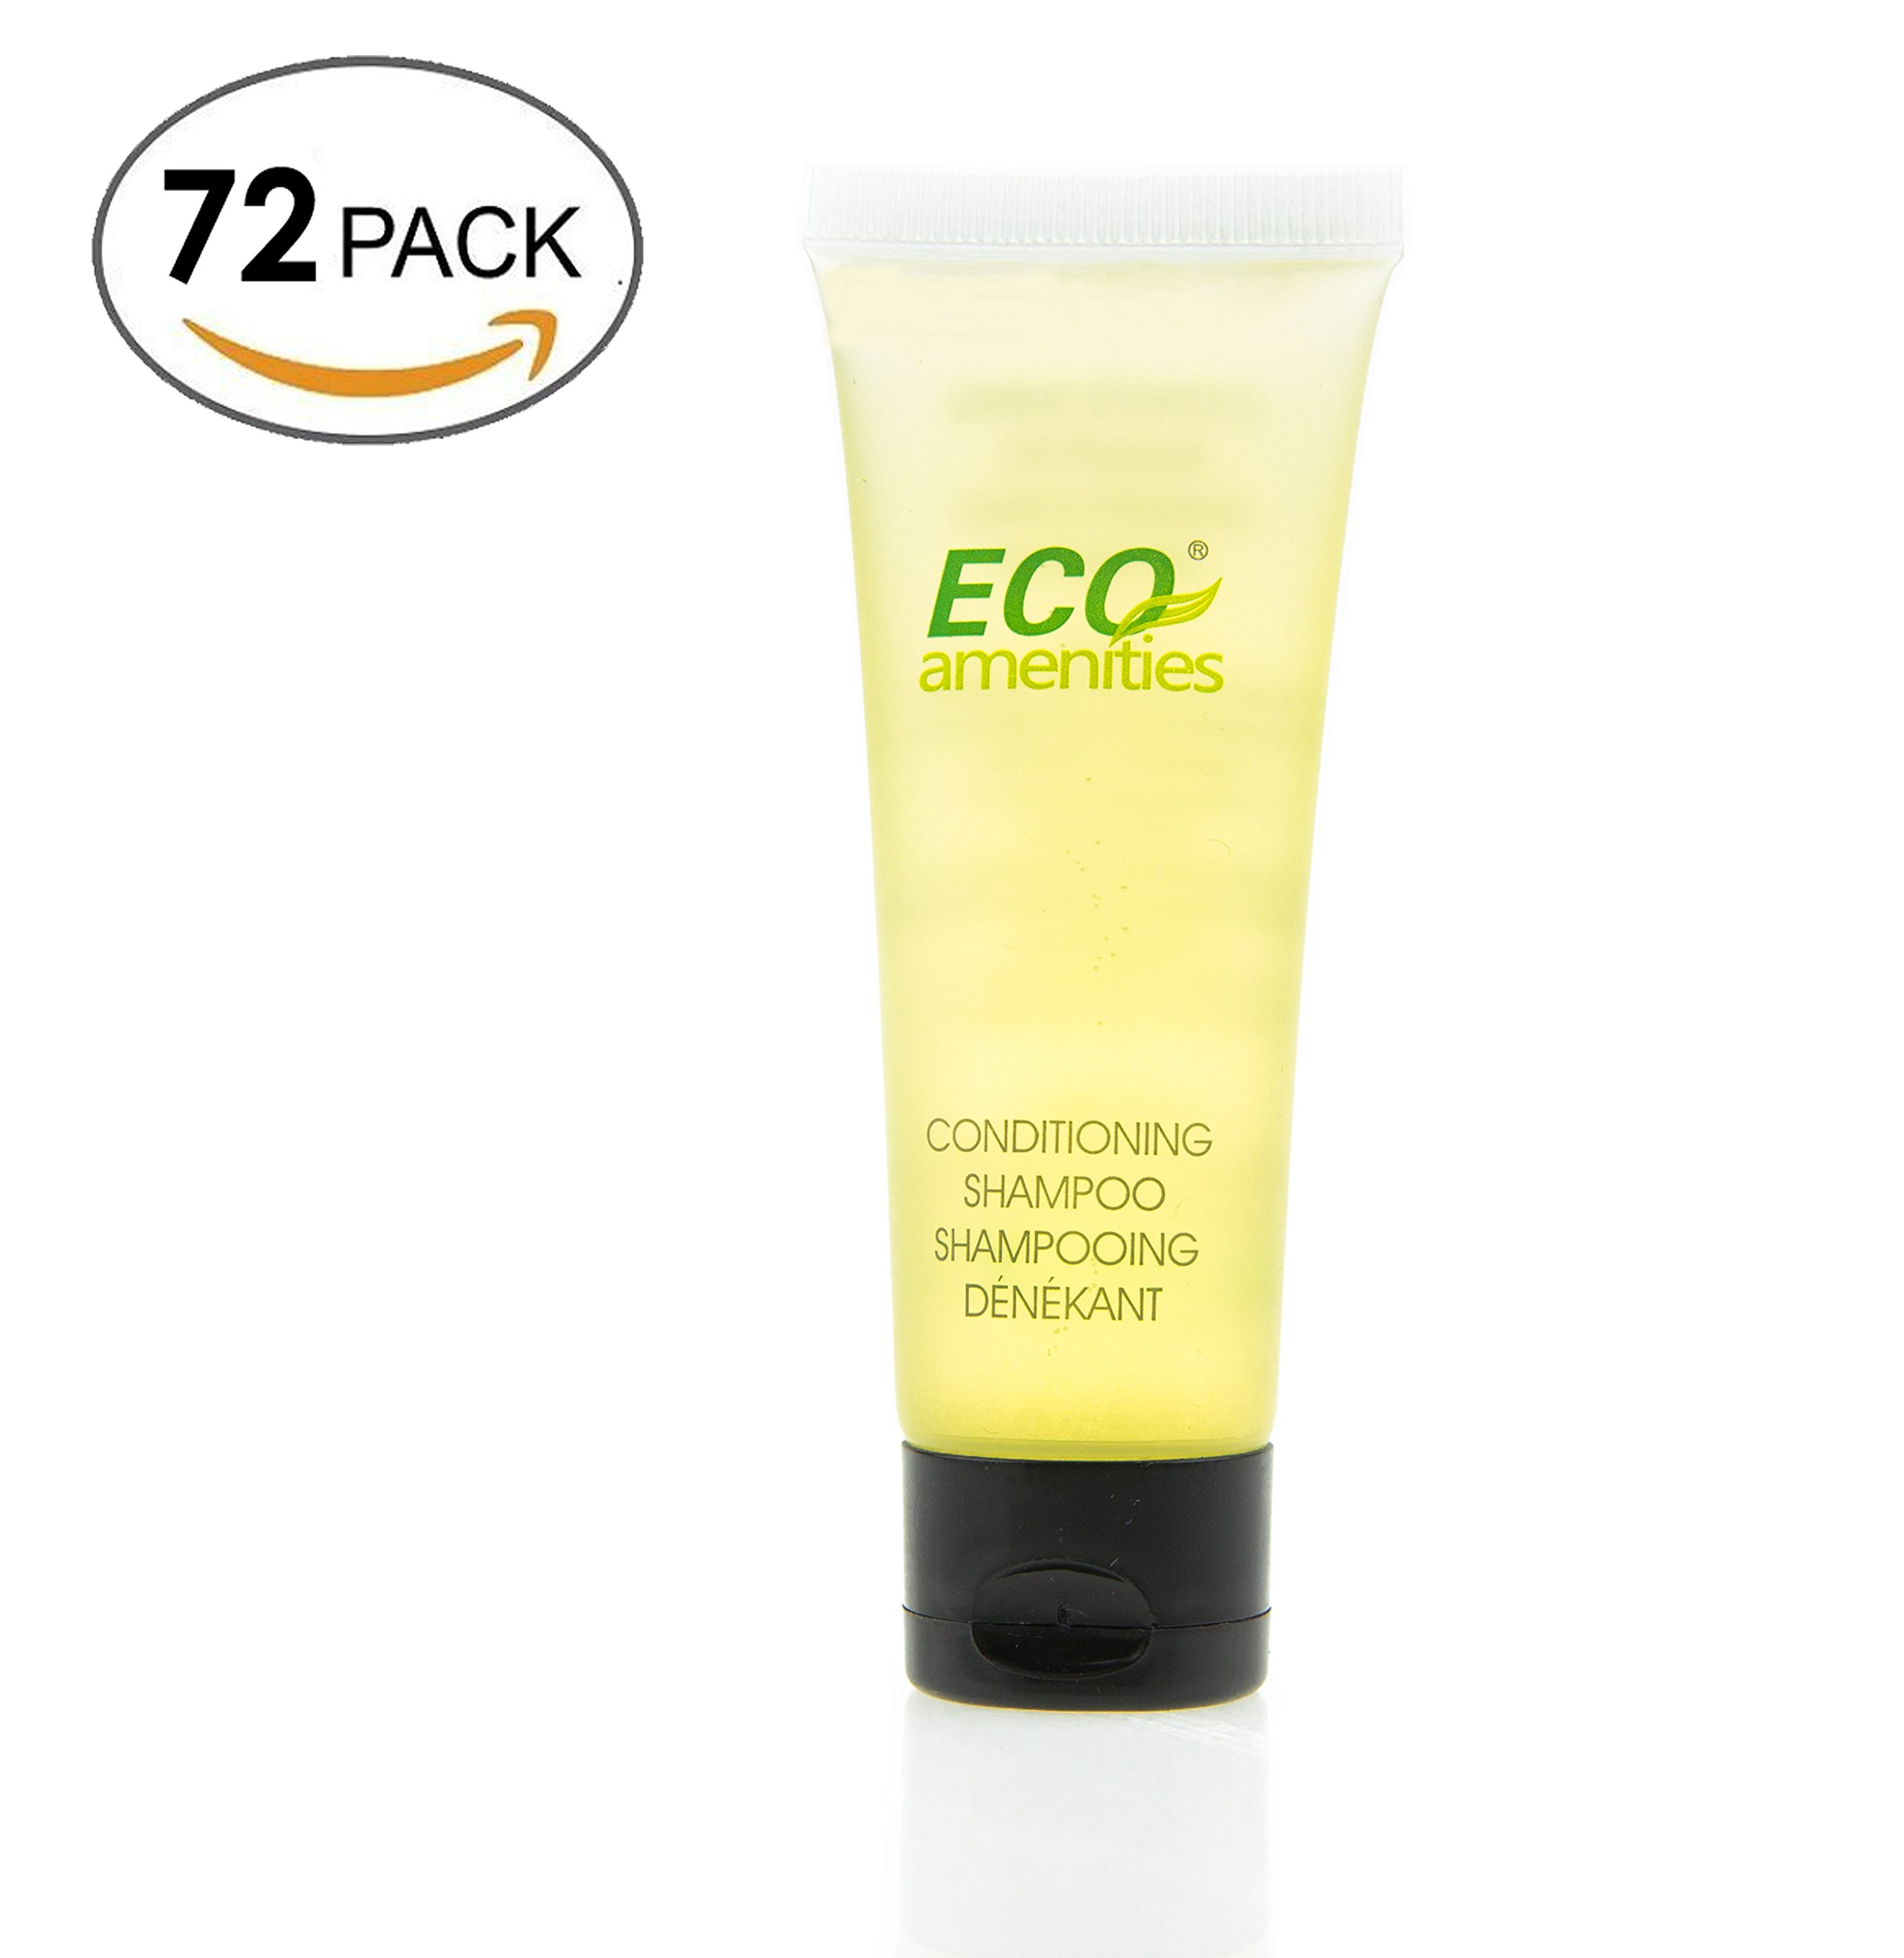 ECO AMENITIES Transparent Tube Flip Cap Individually Wrapped 30ml Shampoo & Conditioner 2 in 1, 72 Tubes per Case by H2O